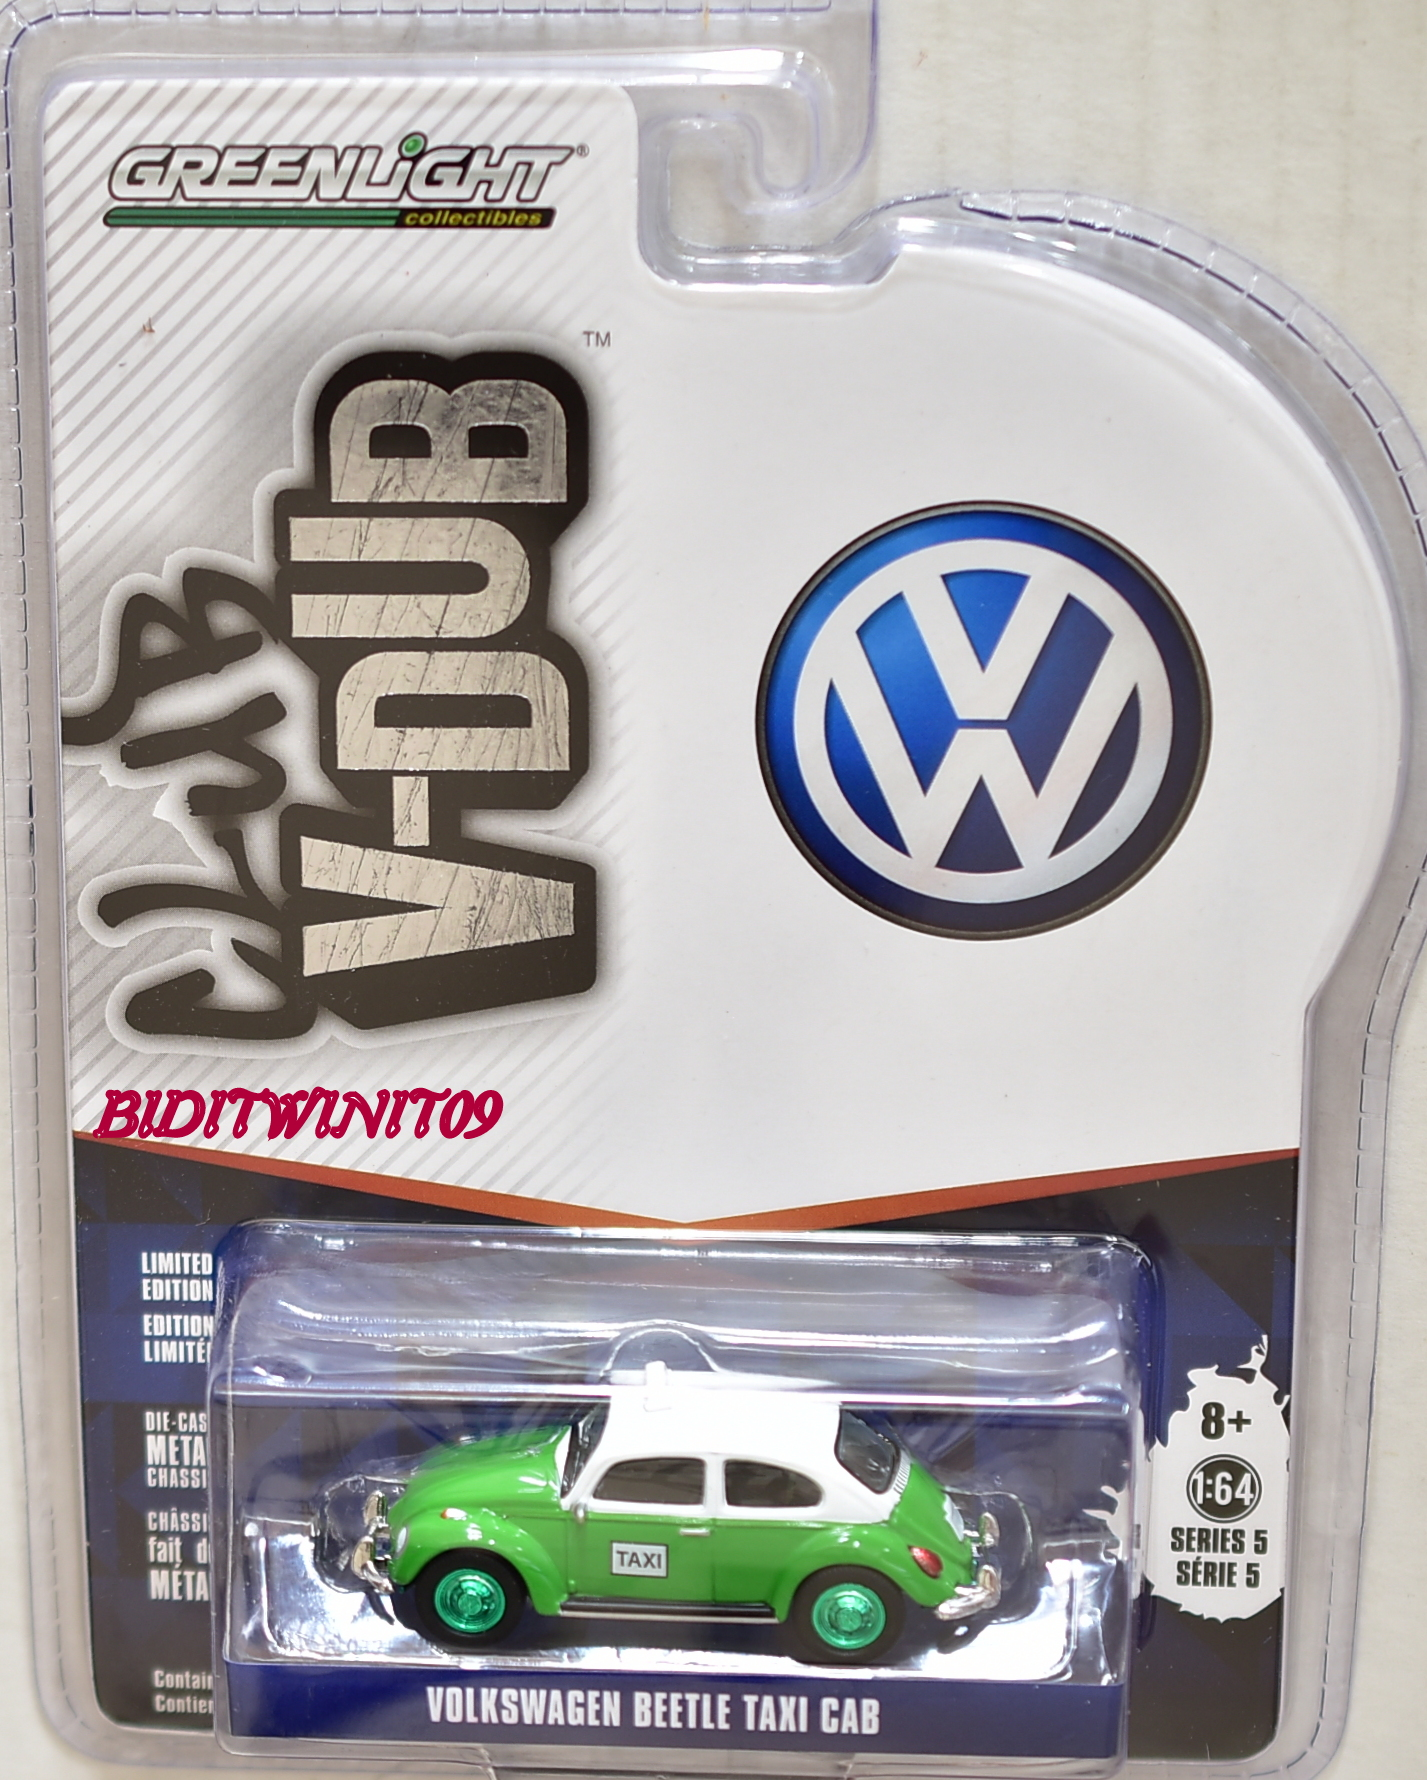 GREENLIGHT 2017 CLUB V-DUB SERIES 5 VOLKSWAGEN BEETLE TAXI CAB GREEN MACHINE